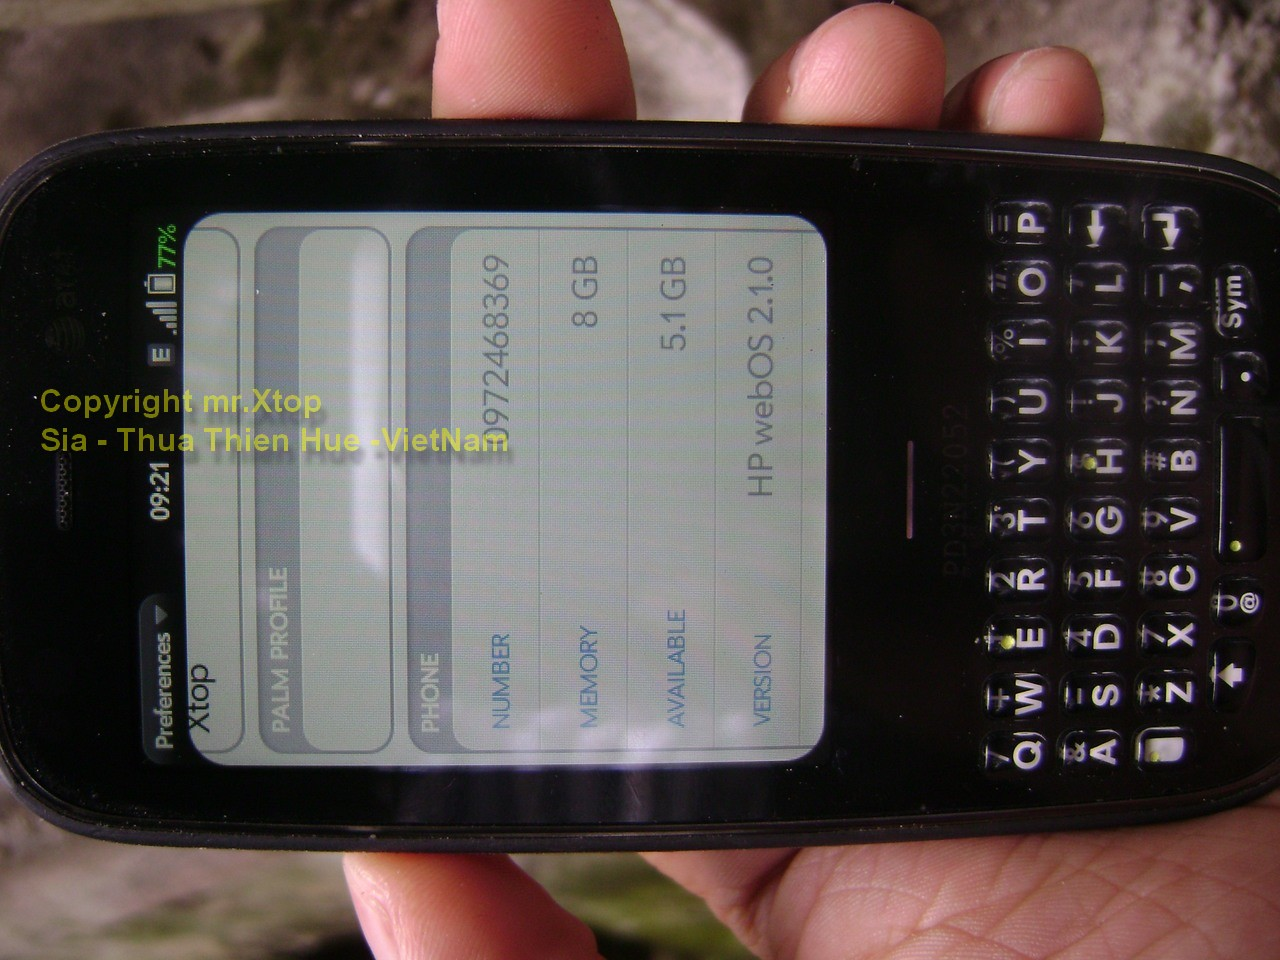 Palm Pixi Plus webOS 2.1